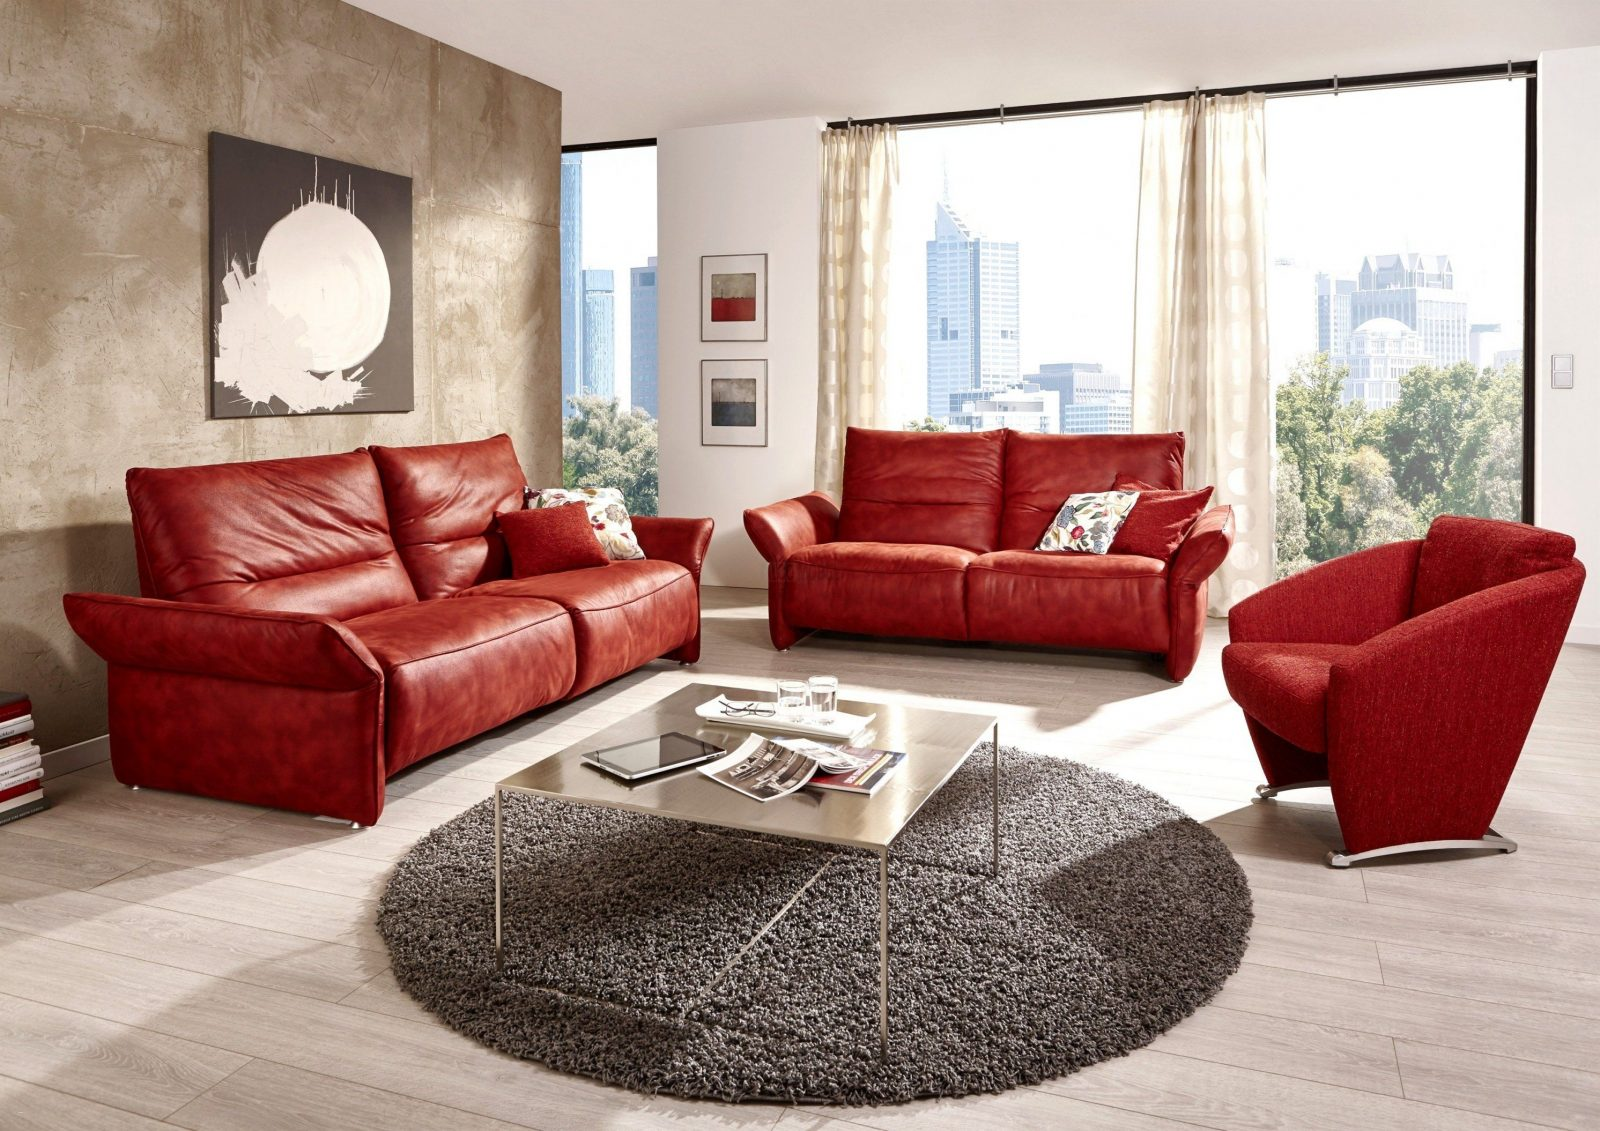 Rote Couch Welche Wandfarbe | Haus Design Ideen